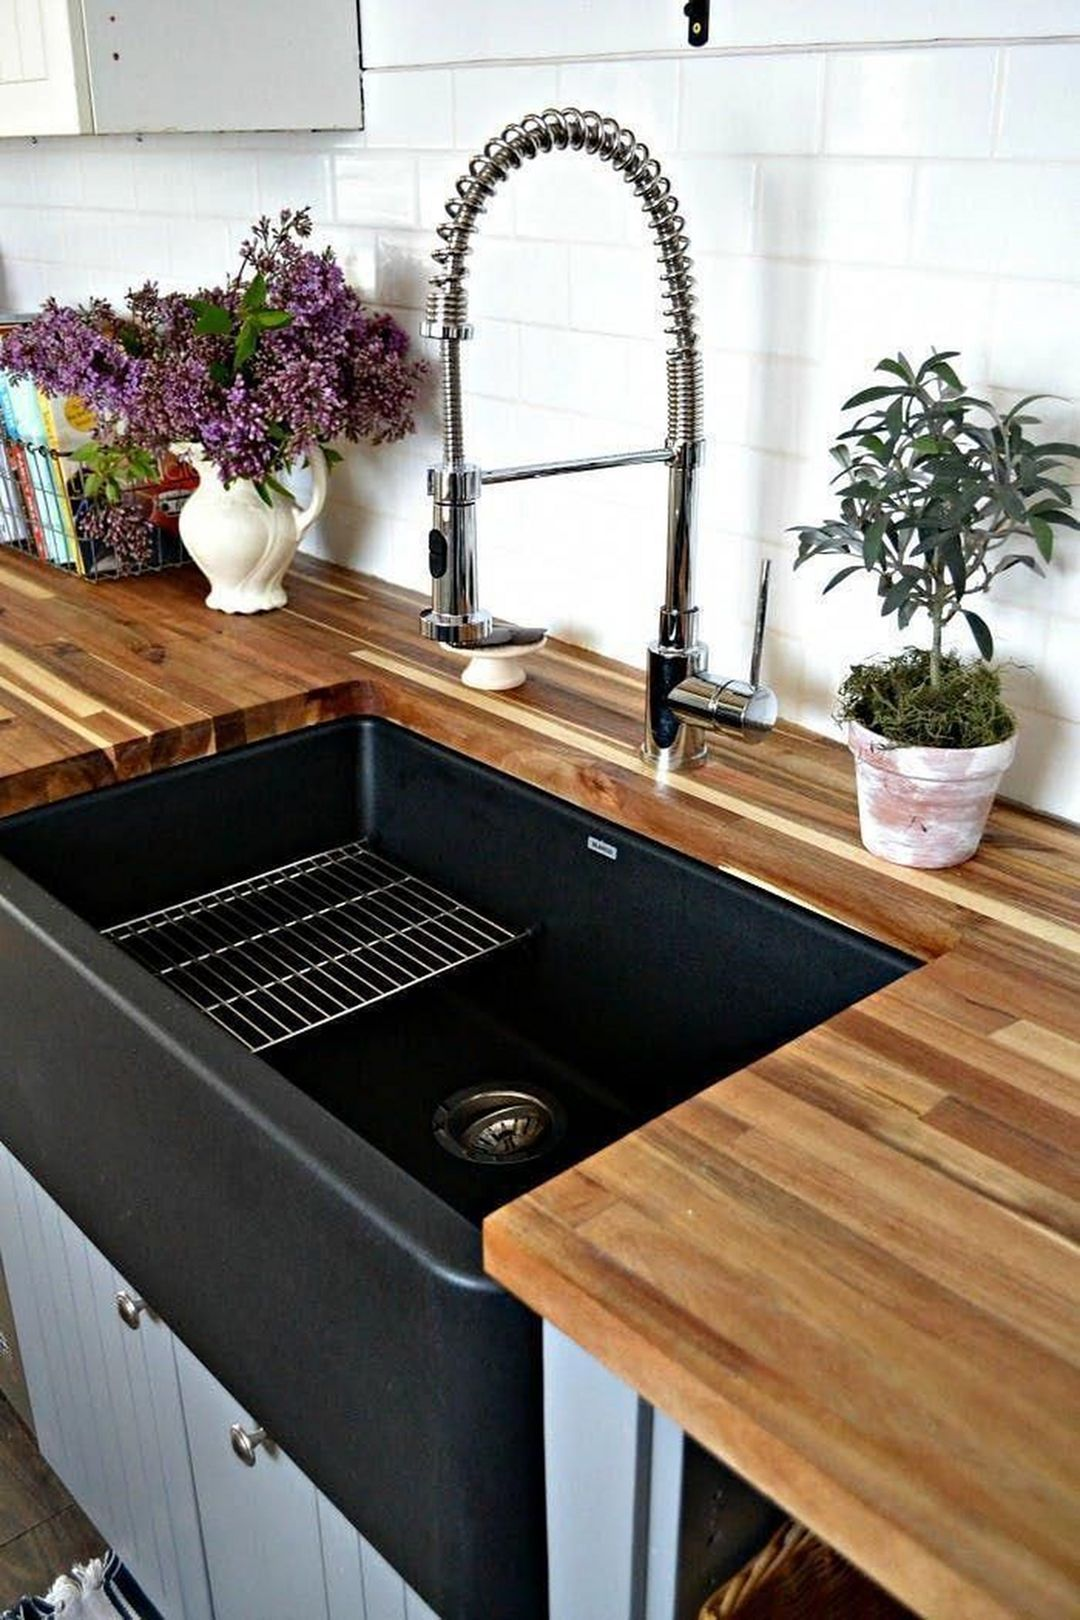 Invisible Kitchen Ideas Archives - HOME IDEAS | Kitchen ...